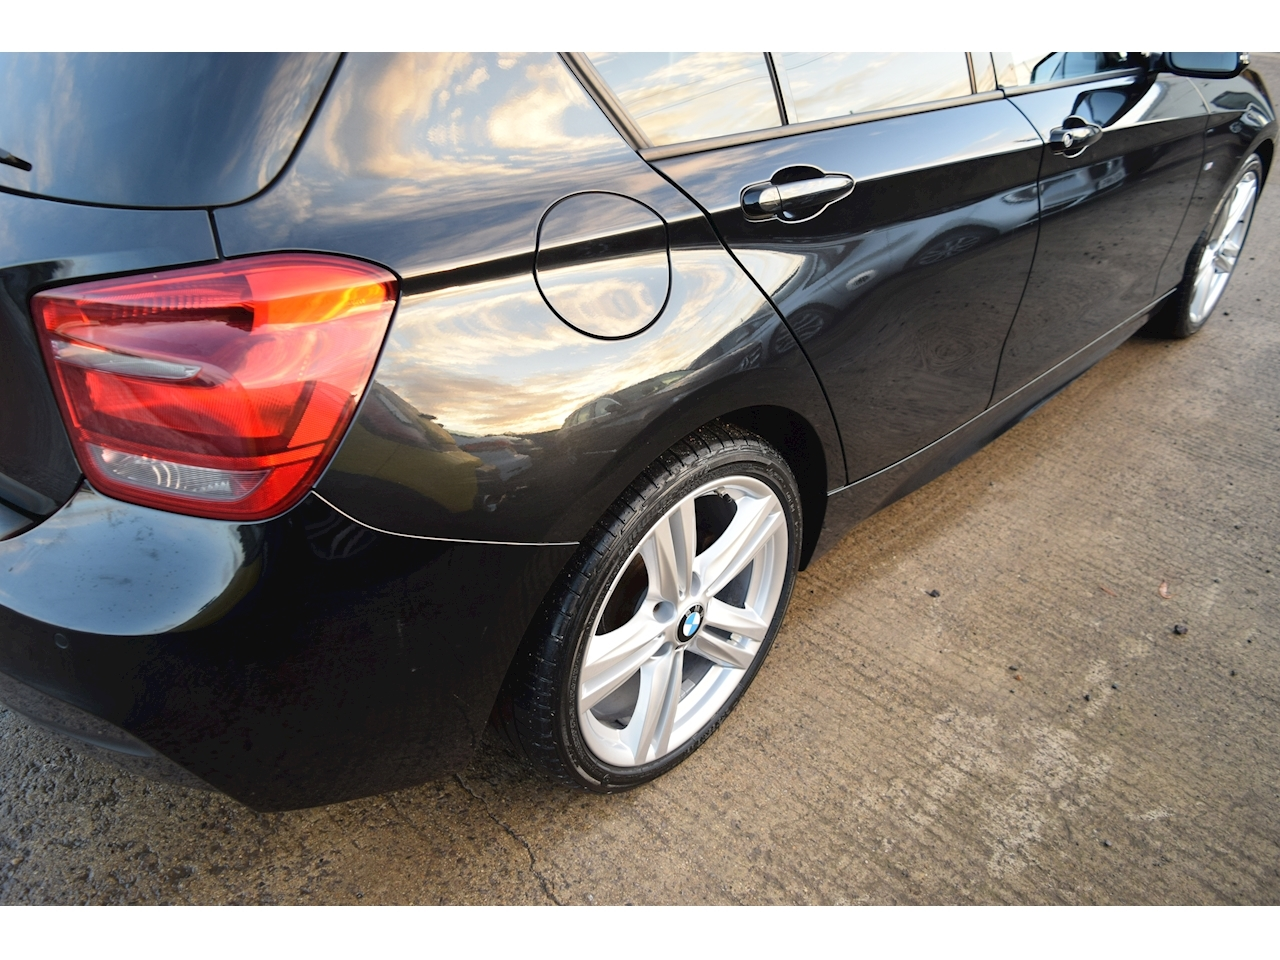 BMW 1 Series 116d M Sport 5 door 5 Door Sports Hatch 2.0 Manual Diesel